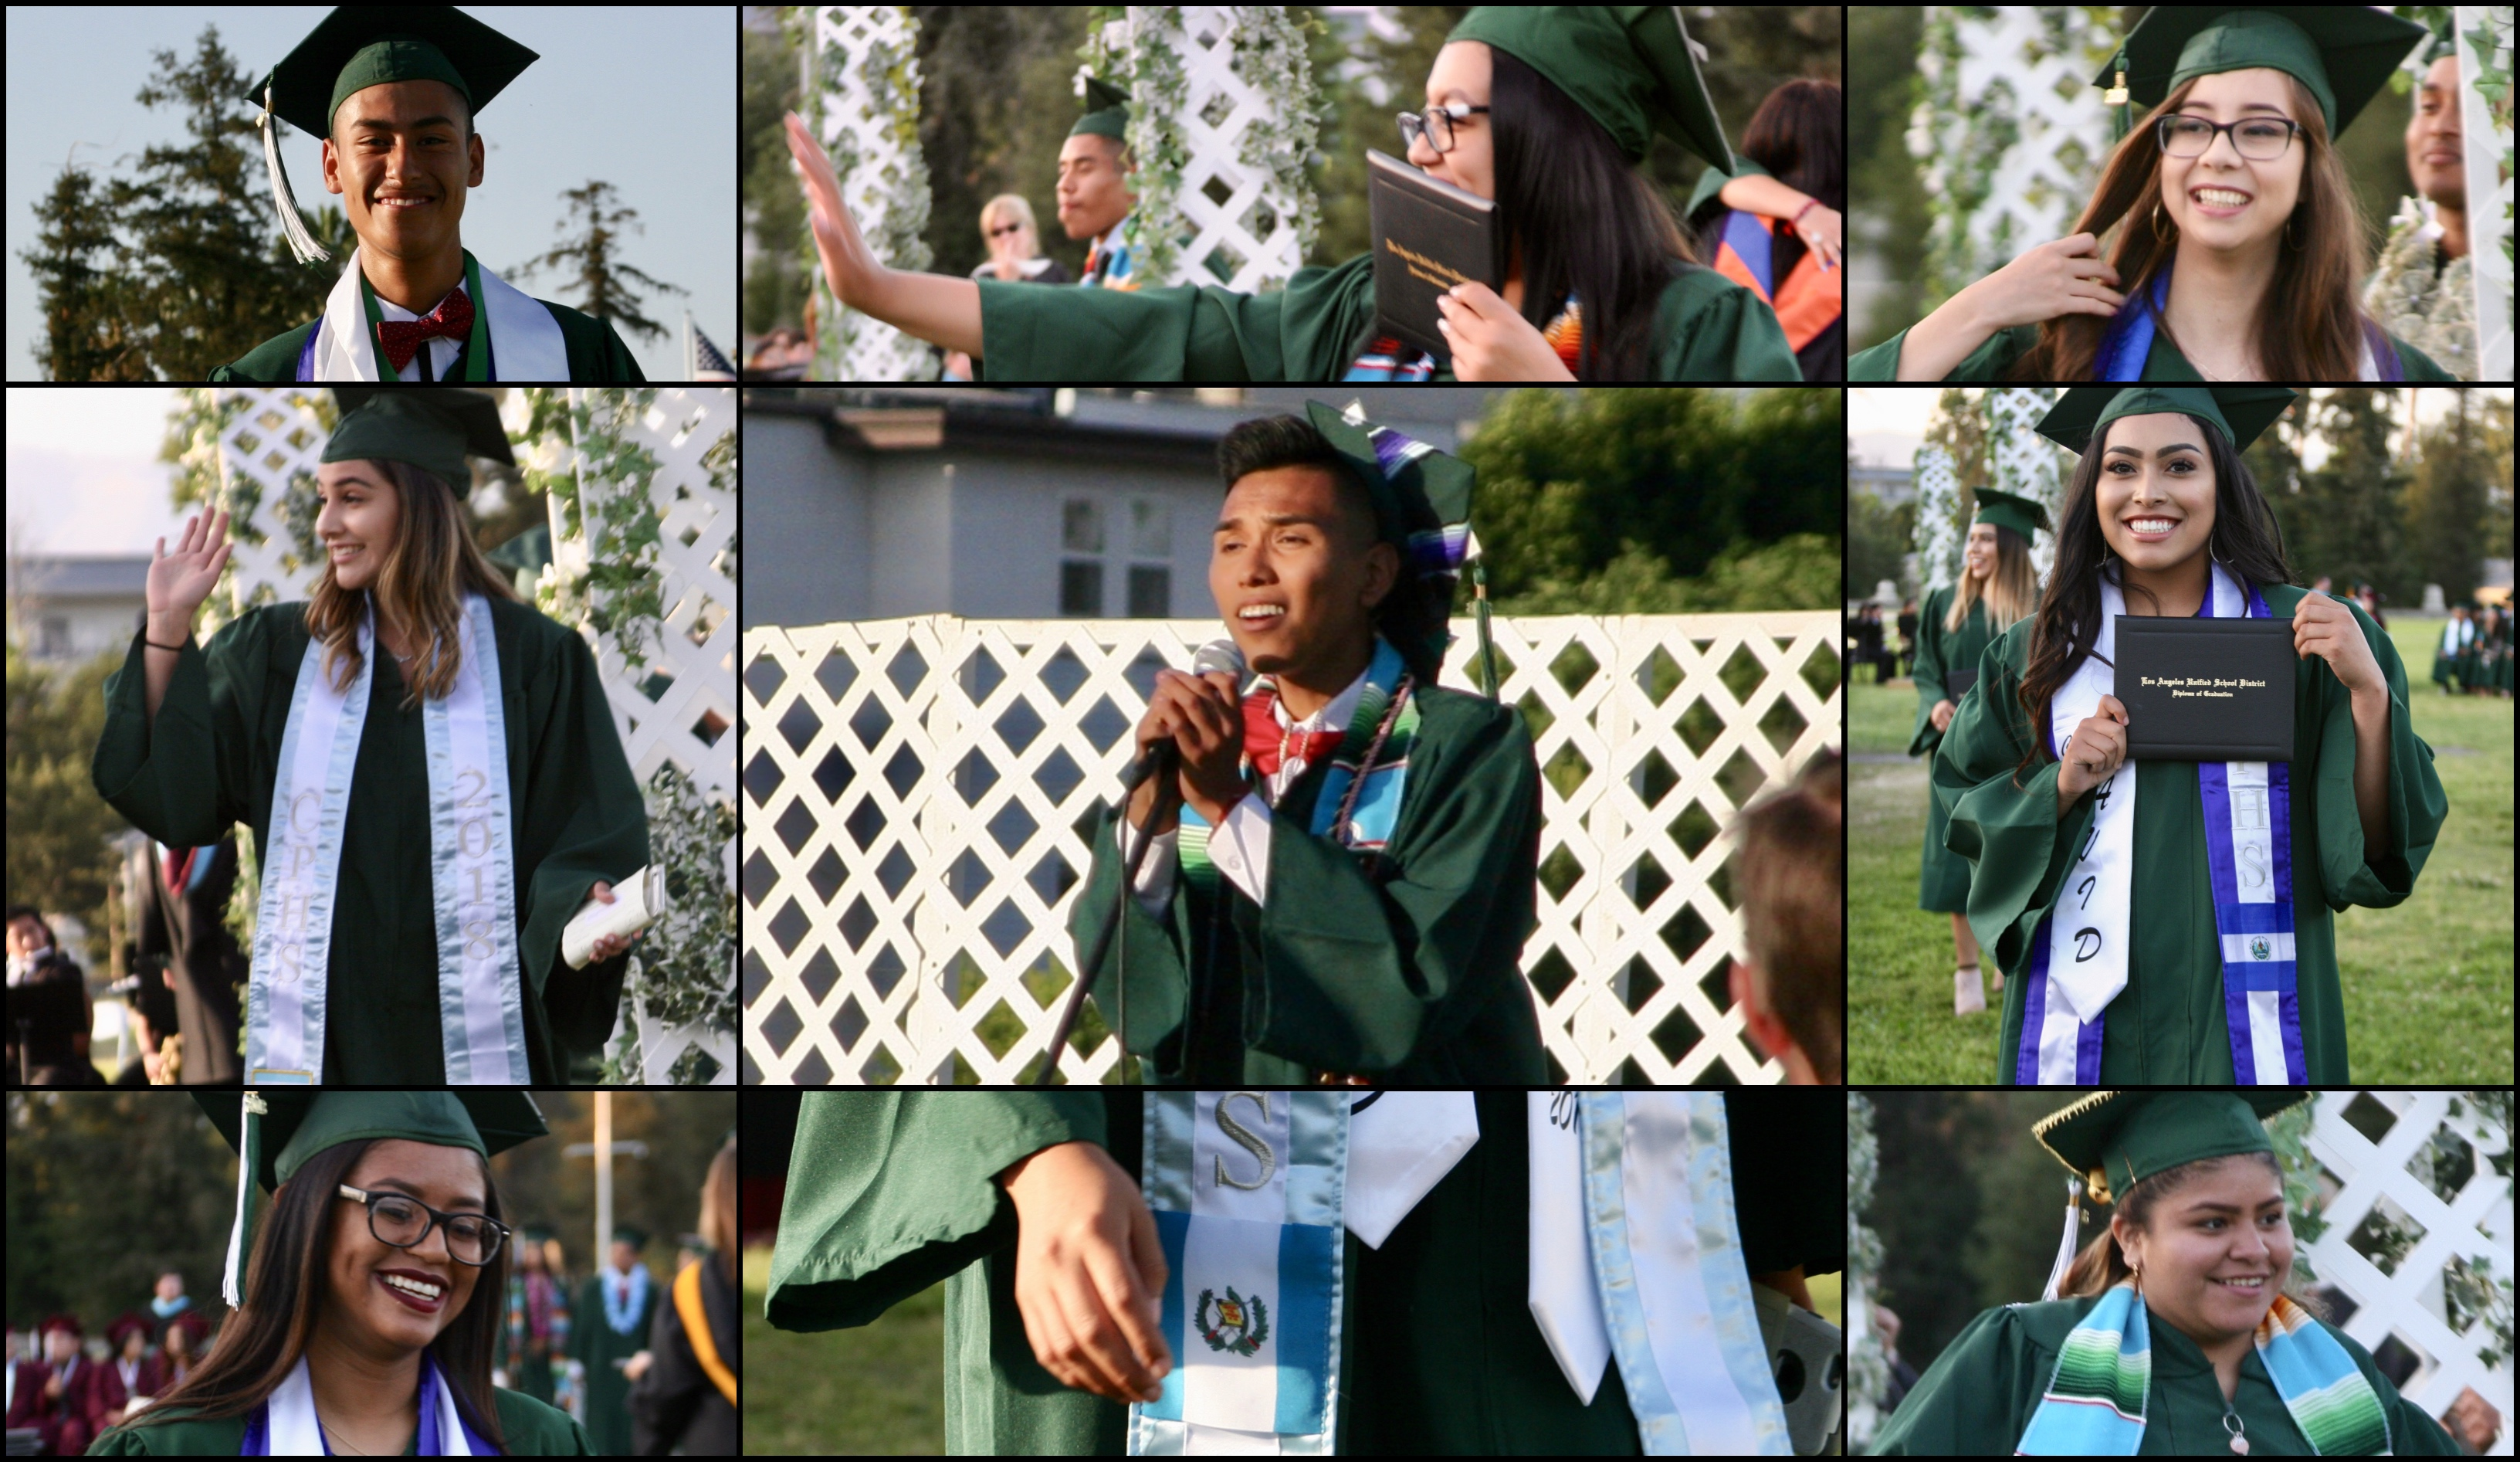 Cultural Sashes One Graduates Project Toward Change One Gallon At